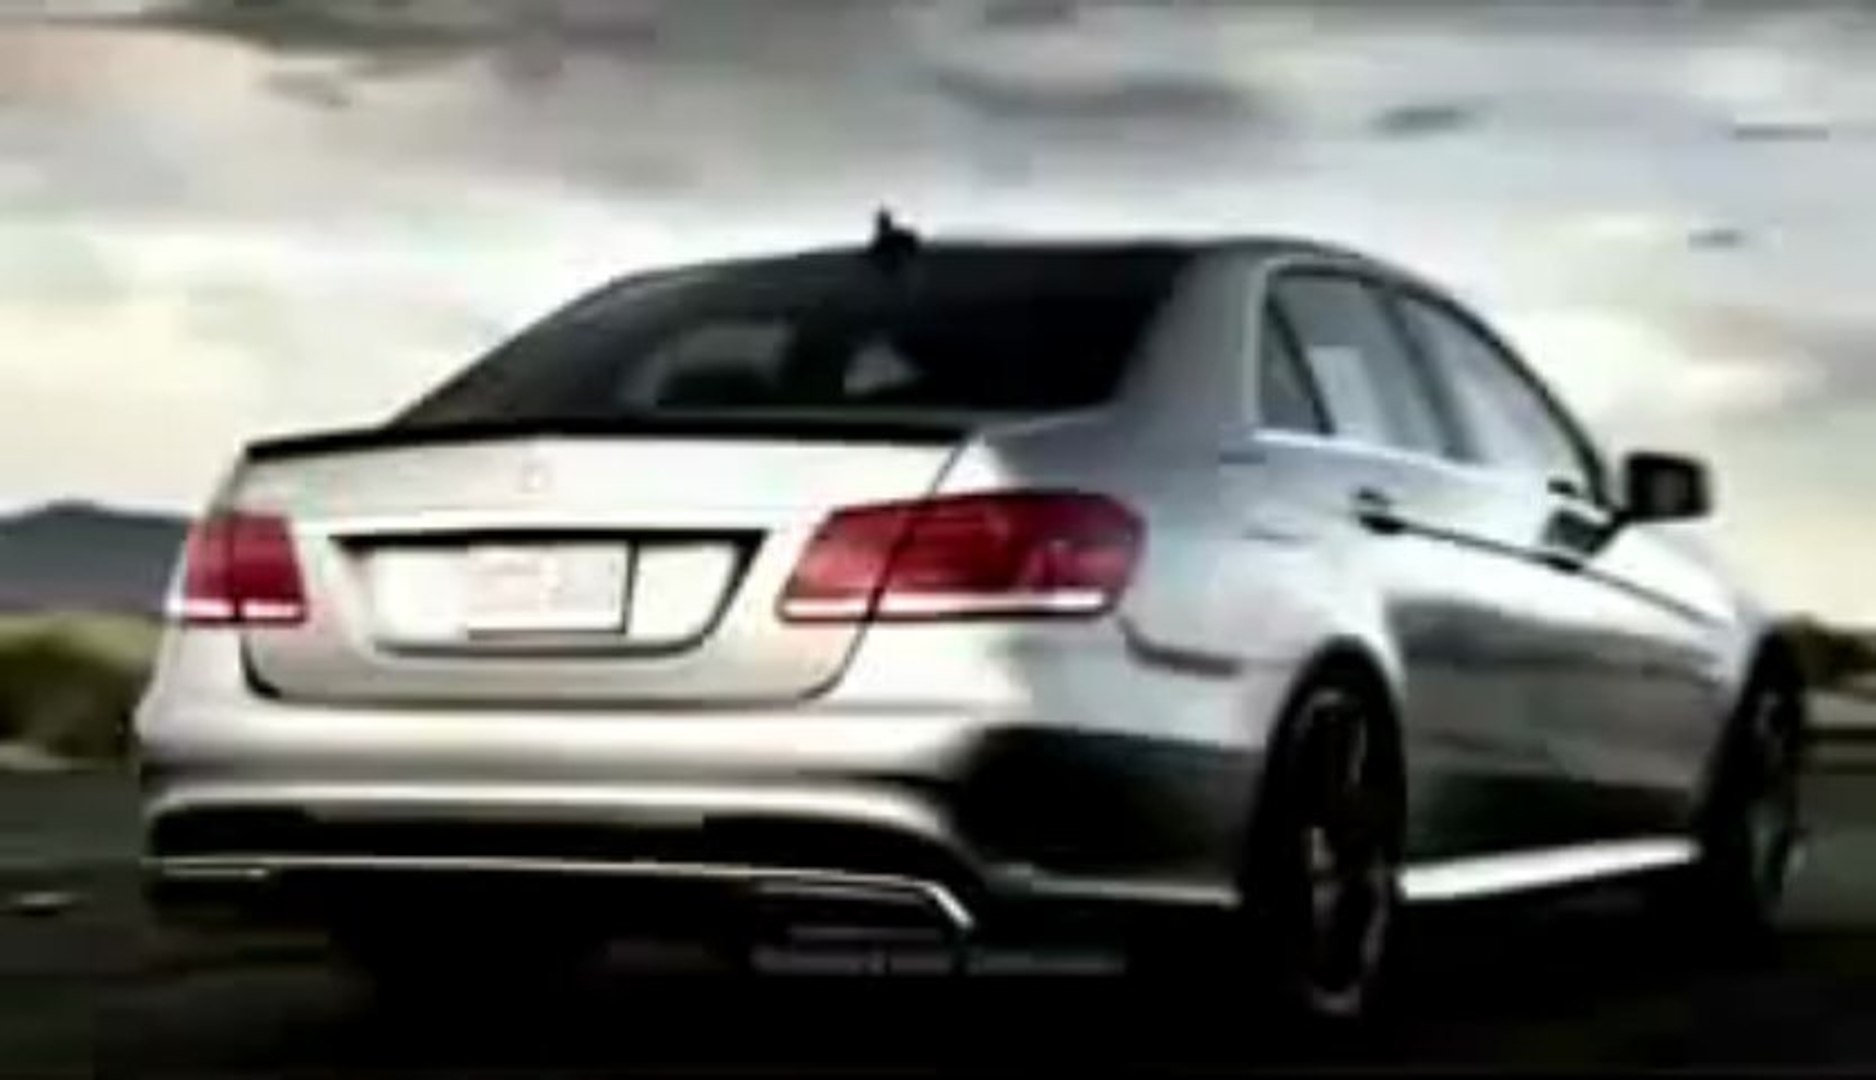 Mercedes Benz E-Class Chester NJ | Lease a Mercedes Benz Chester NJ